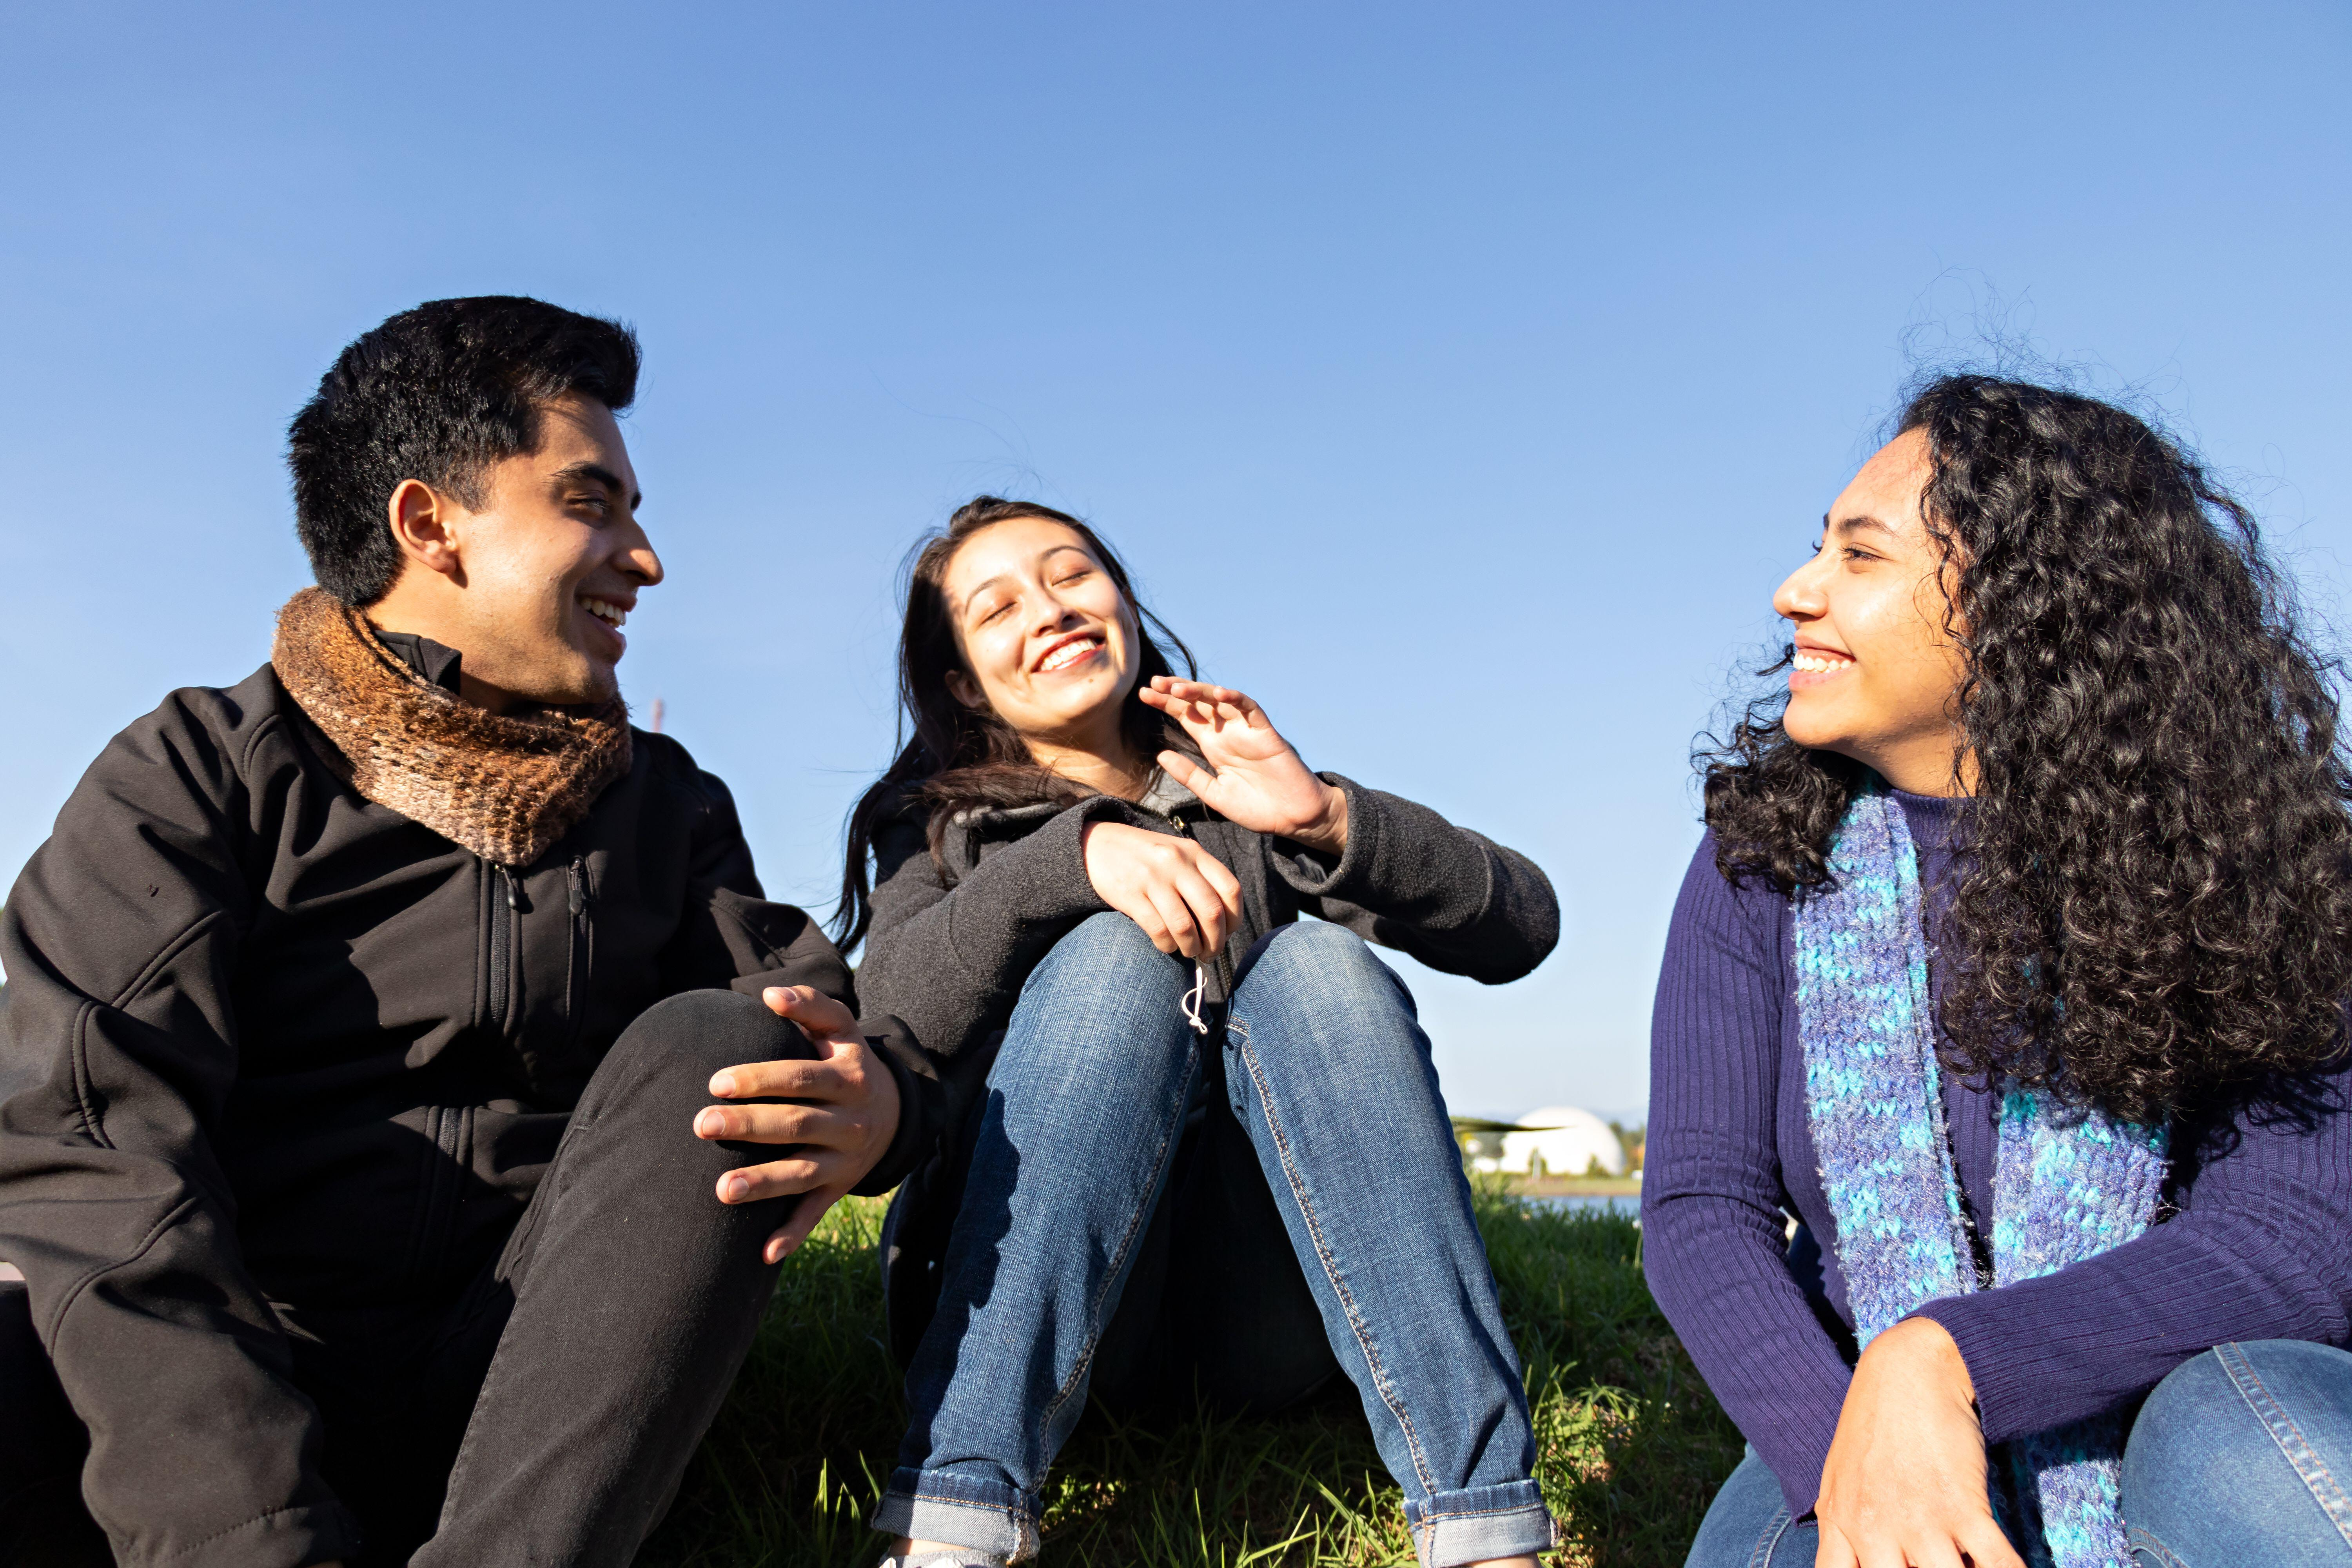 group of friends, two women and a man, talking and laughing